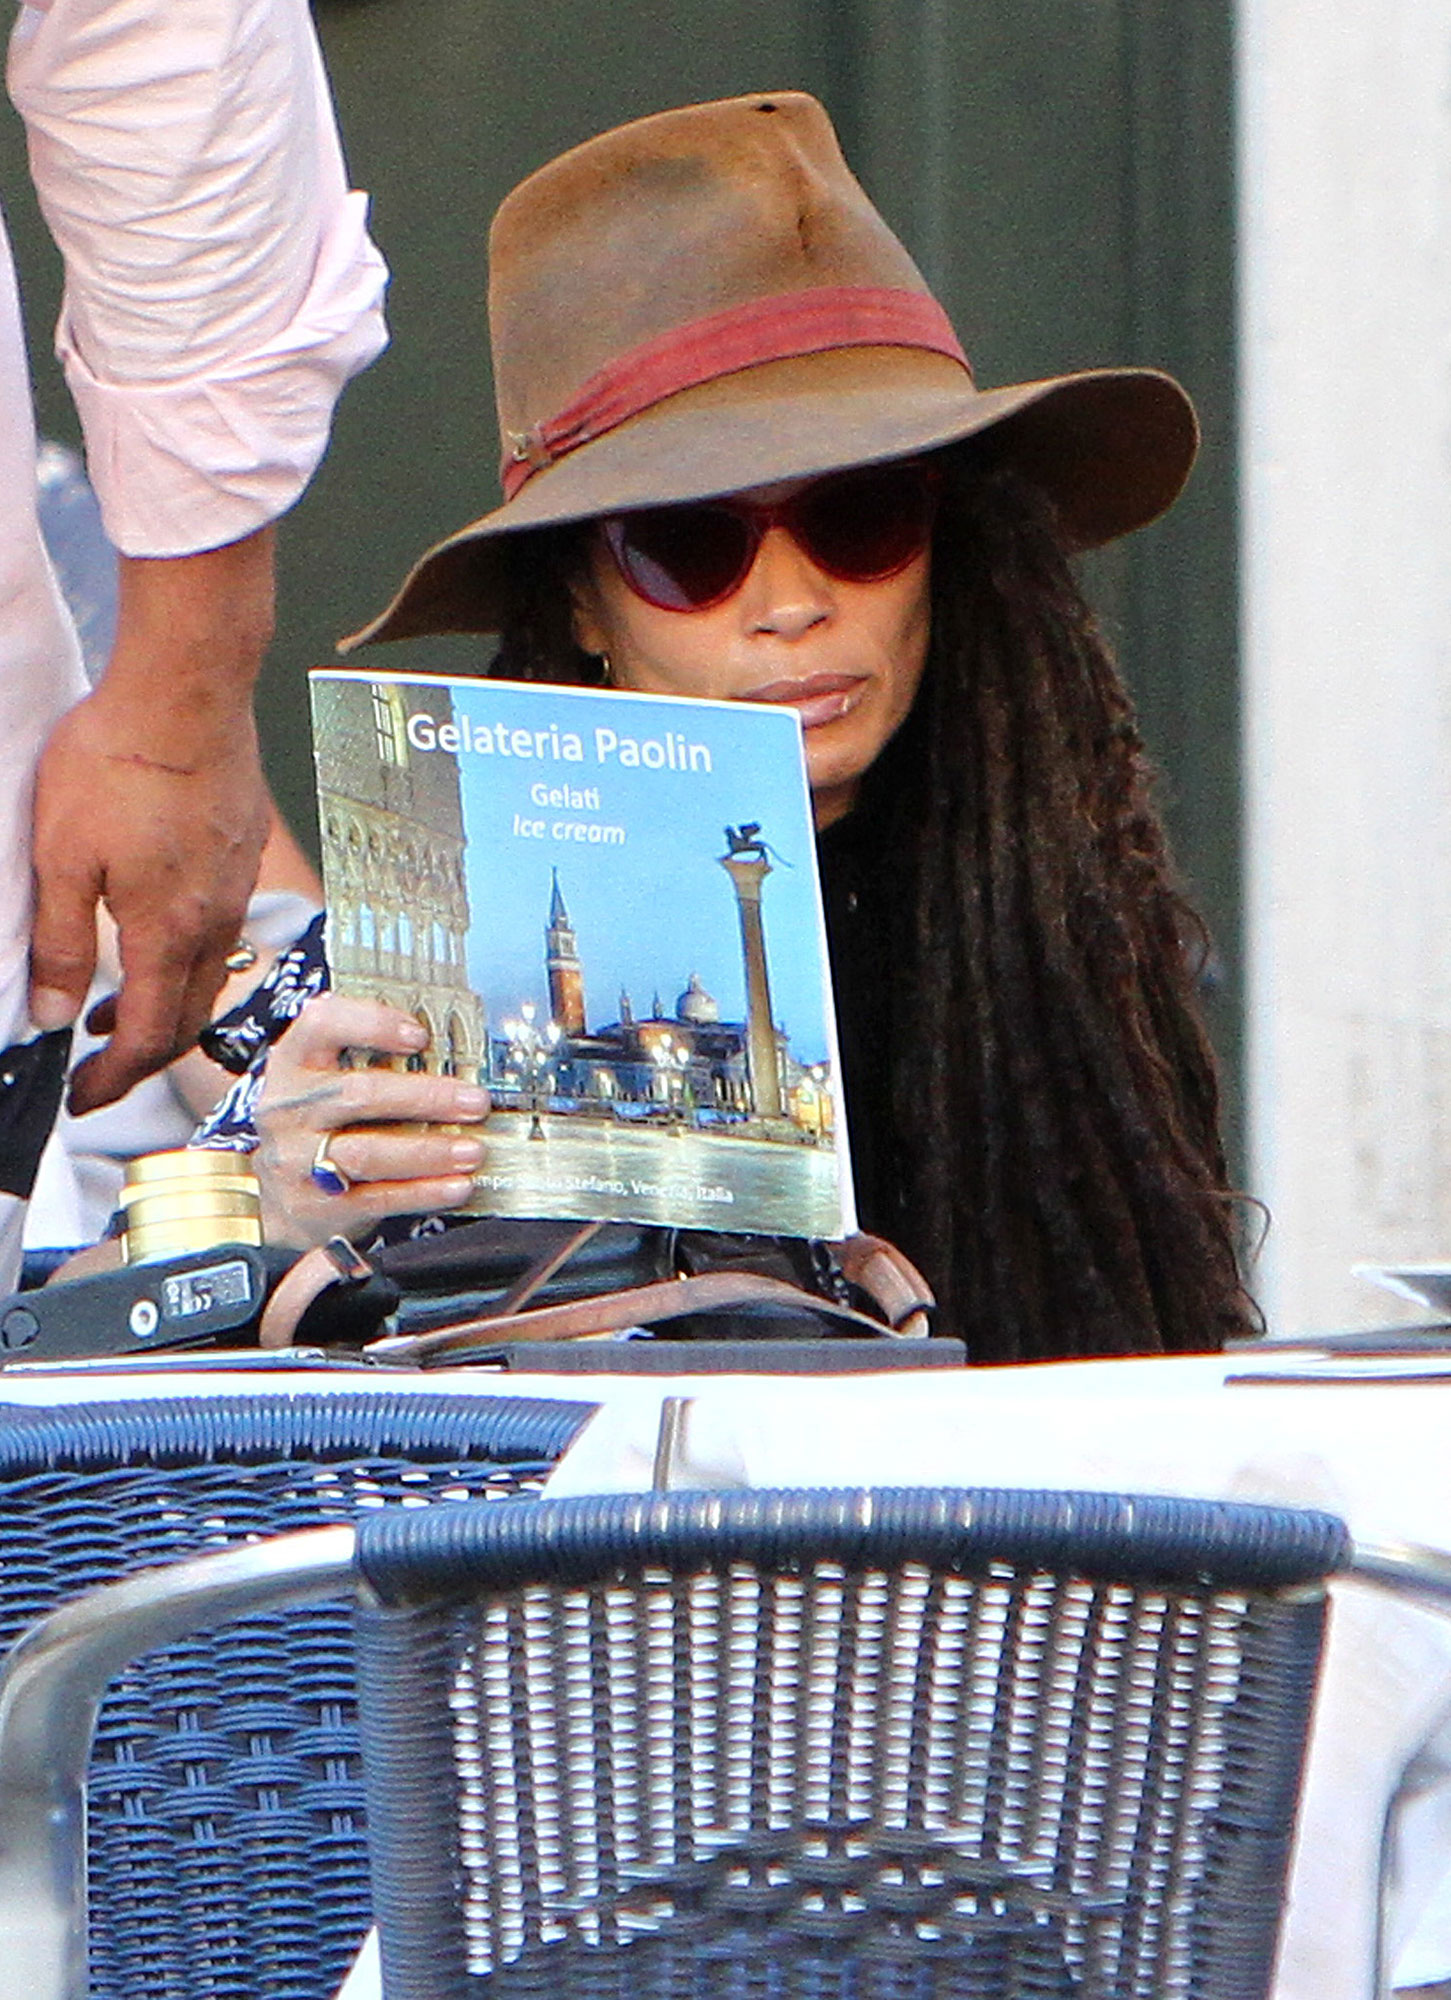 Lisa Bonet Explore Italy Brown Rim Hat Reading - Bonet pondered her options as the family took a gelato break at a local restaurant.